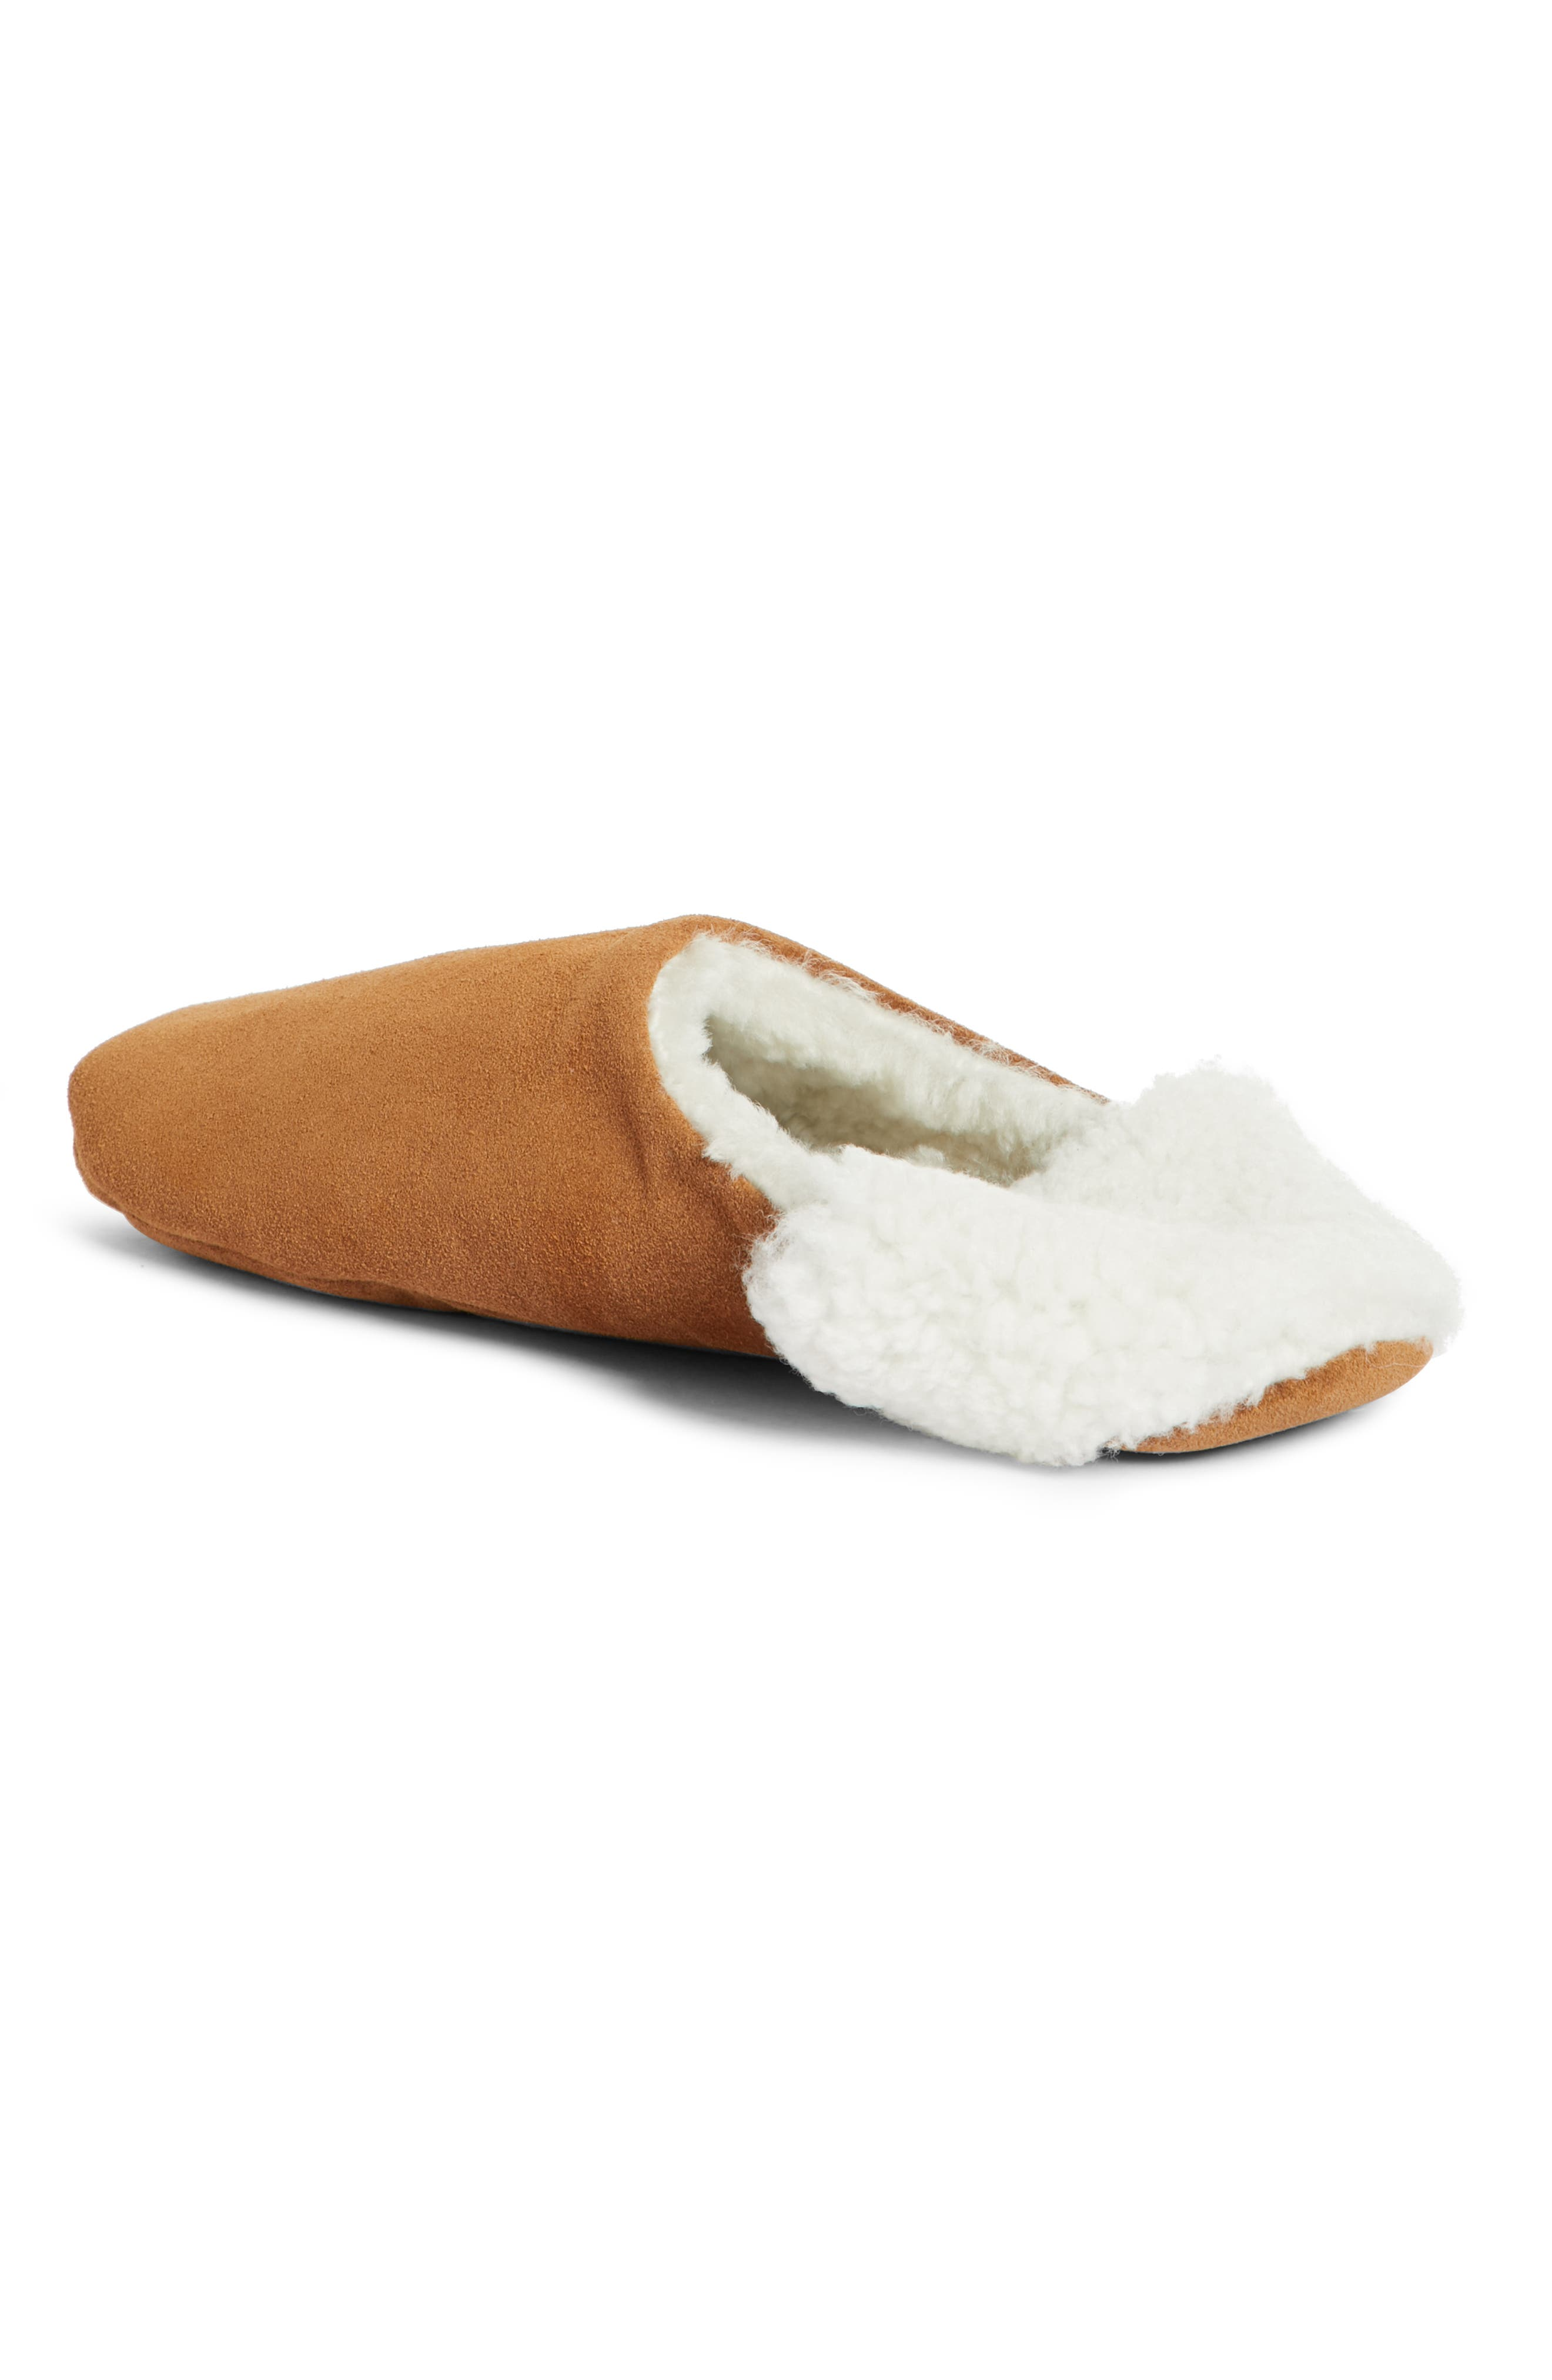 Moroccan Indoor Slipper,                             Alternate thumbnail 3, color,                             SADDLE/ IVORY